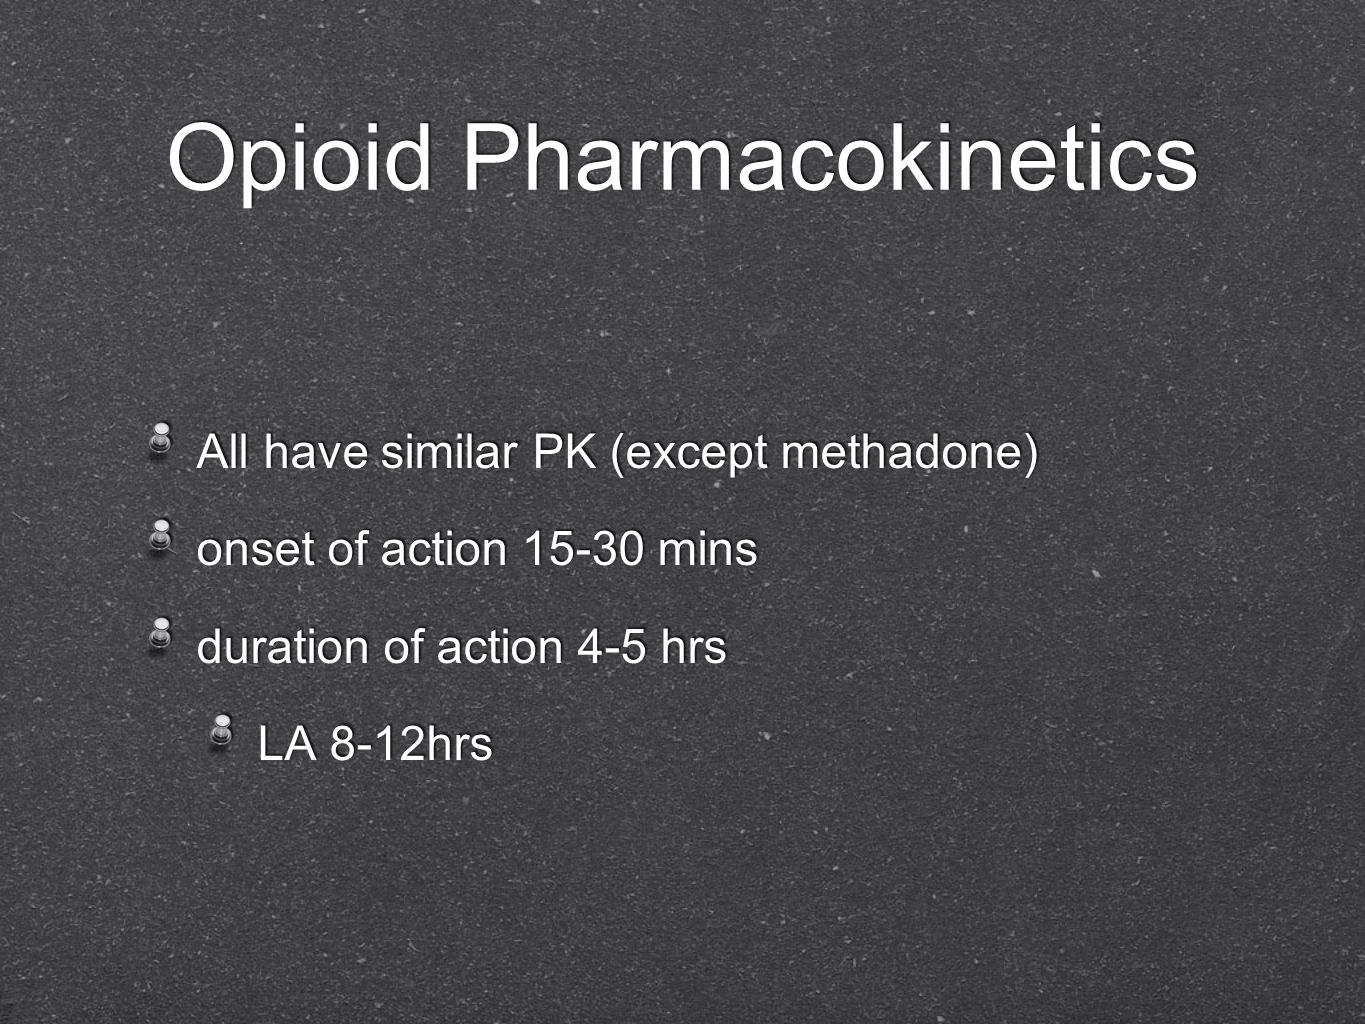 Opioid Pharmacokinetics